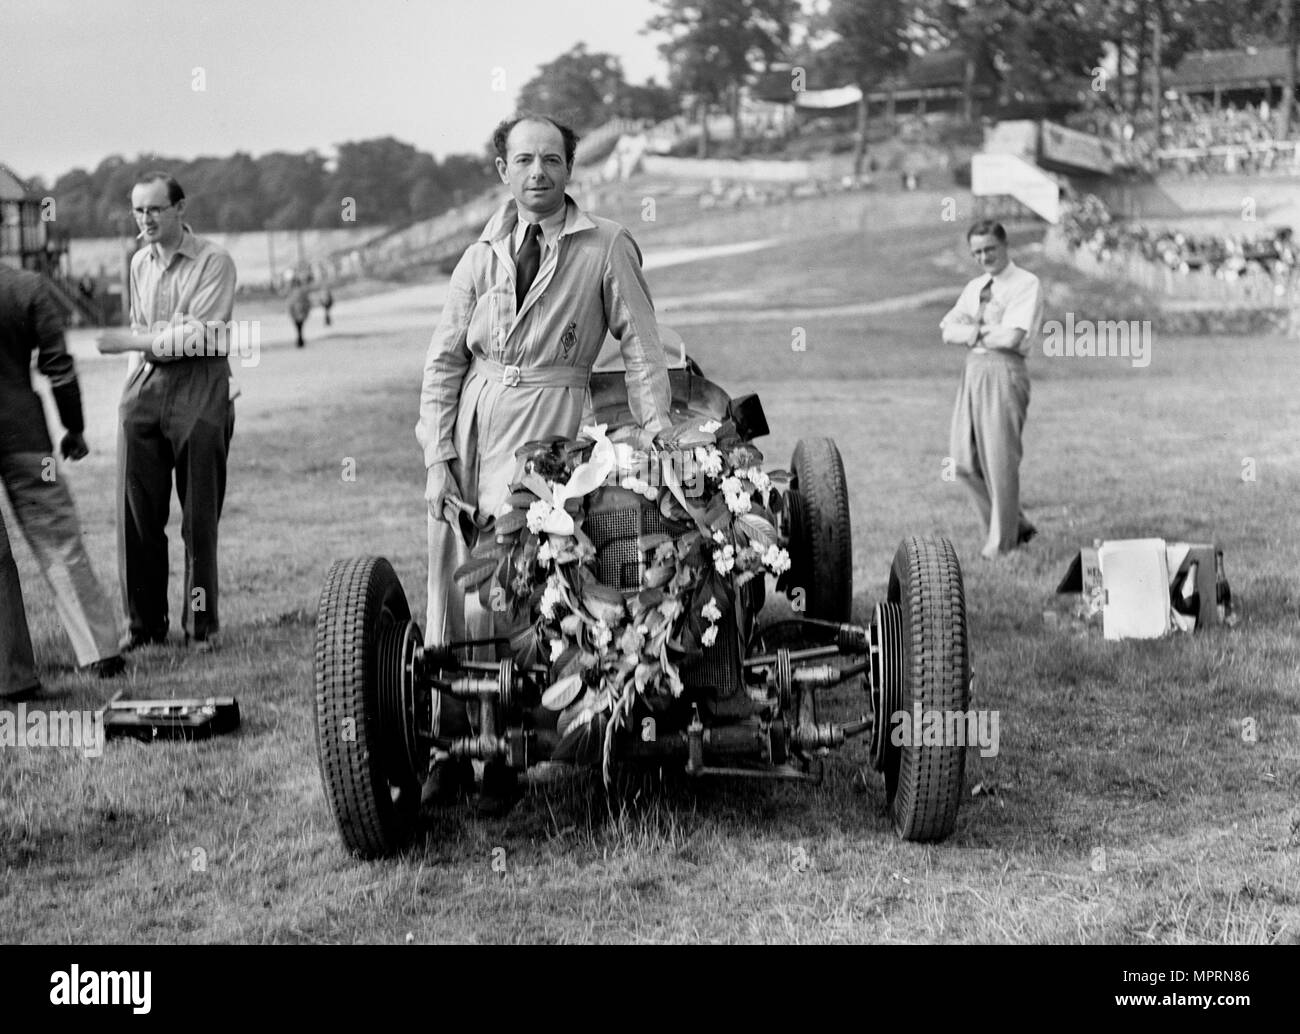 Raymond Mays with his ERA at Brooklands, Surrey, 1936. Artist: Bill Brunell. - Stock Image